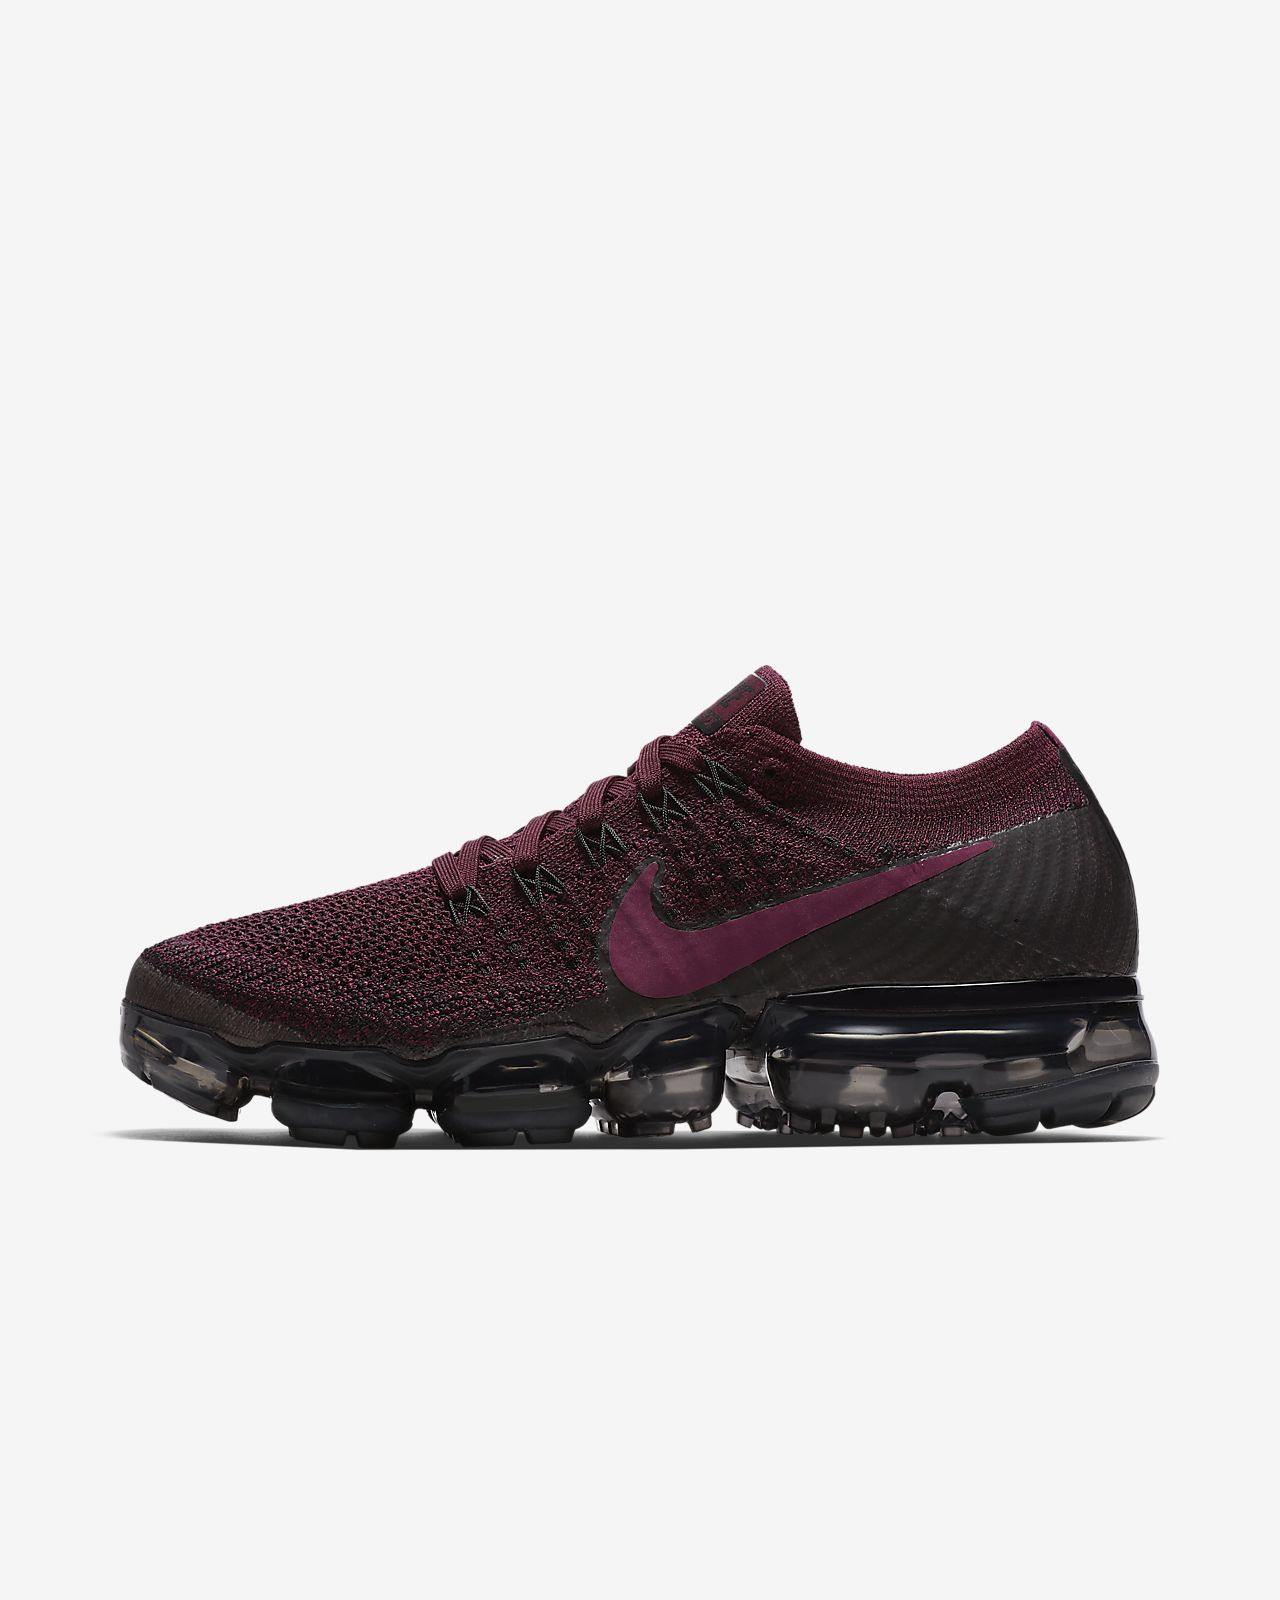 innovative design 84612 21bfb Nike Air VaporMax Flyknit Women s Running Shoe. Nike Air VaporMax Flyknit  Women s Running Shoe Nike Basketball Shoes ...